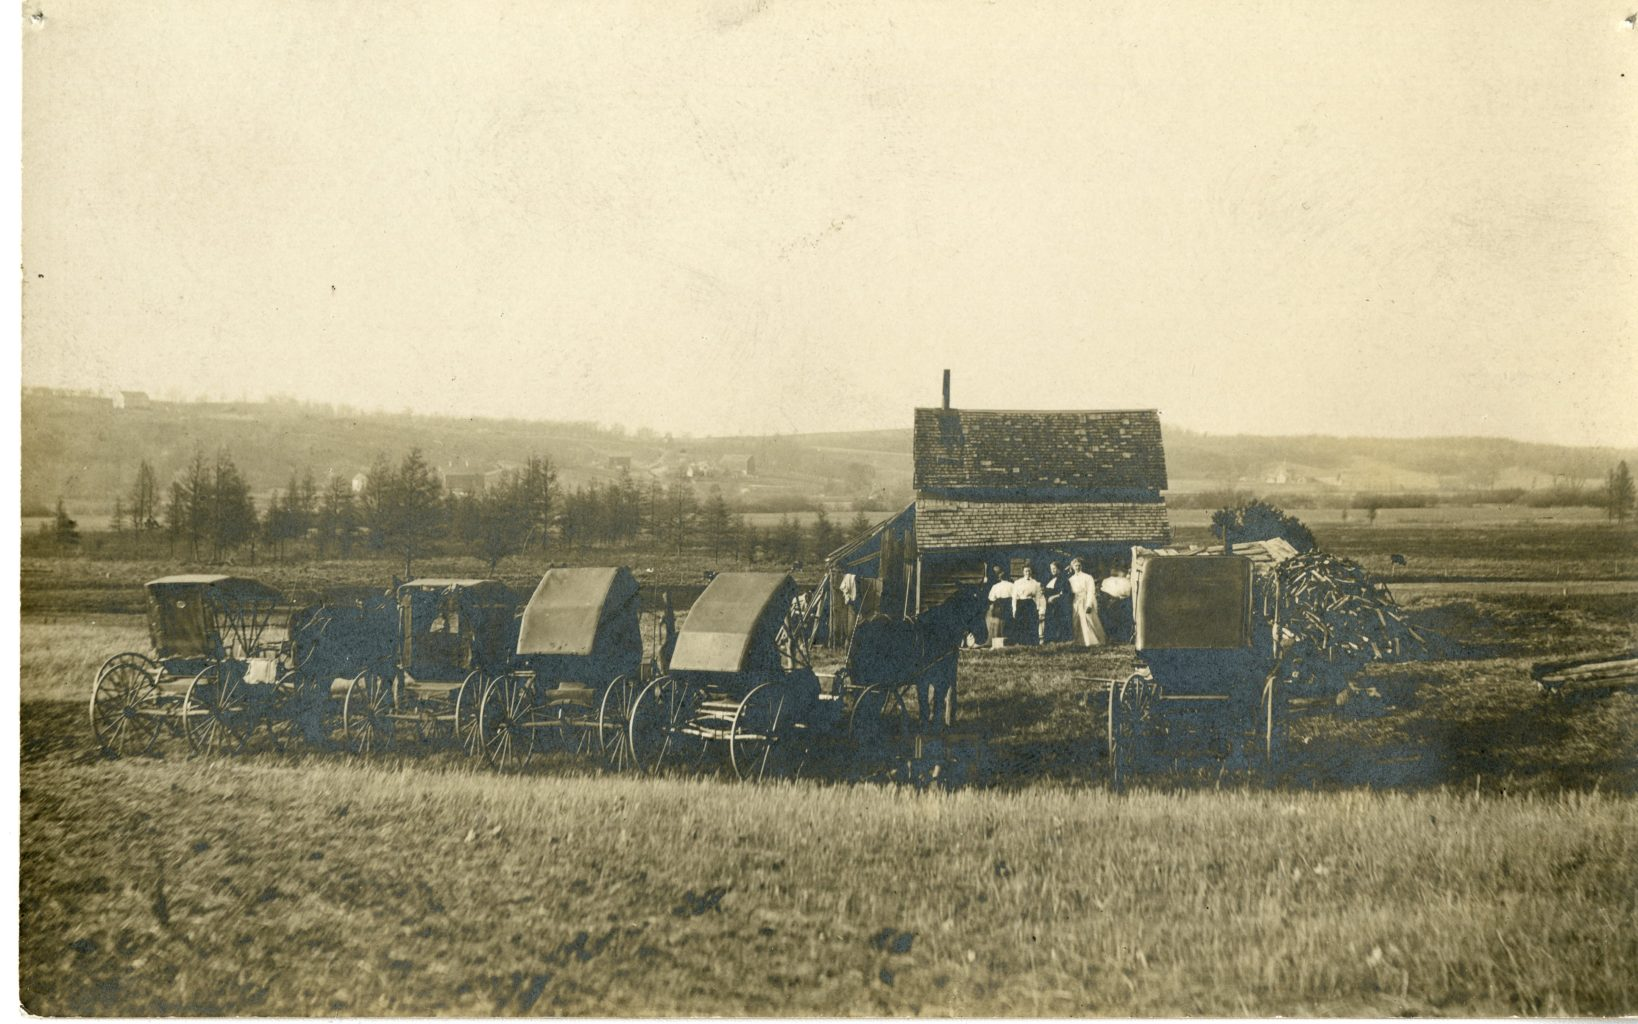 Group of women at farm with many horse and buggies.